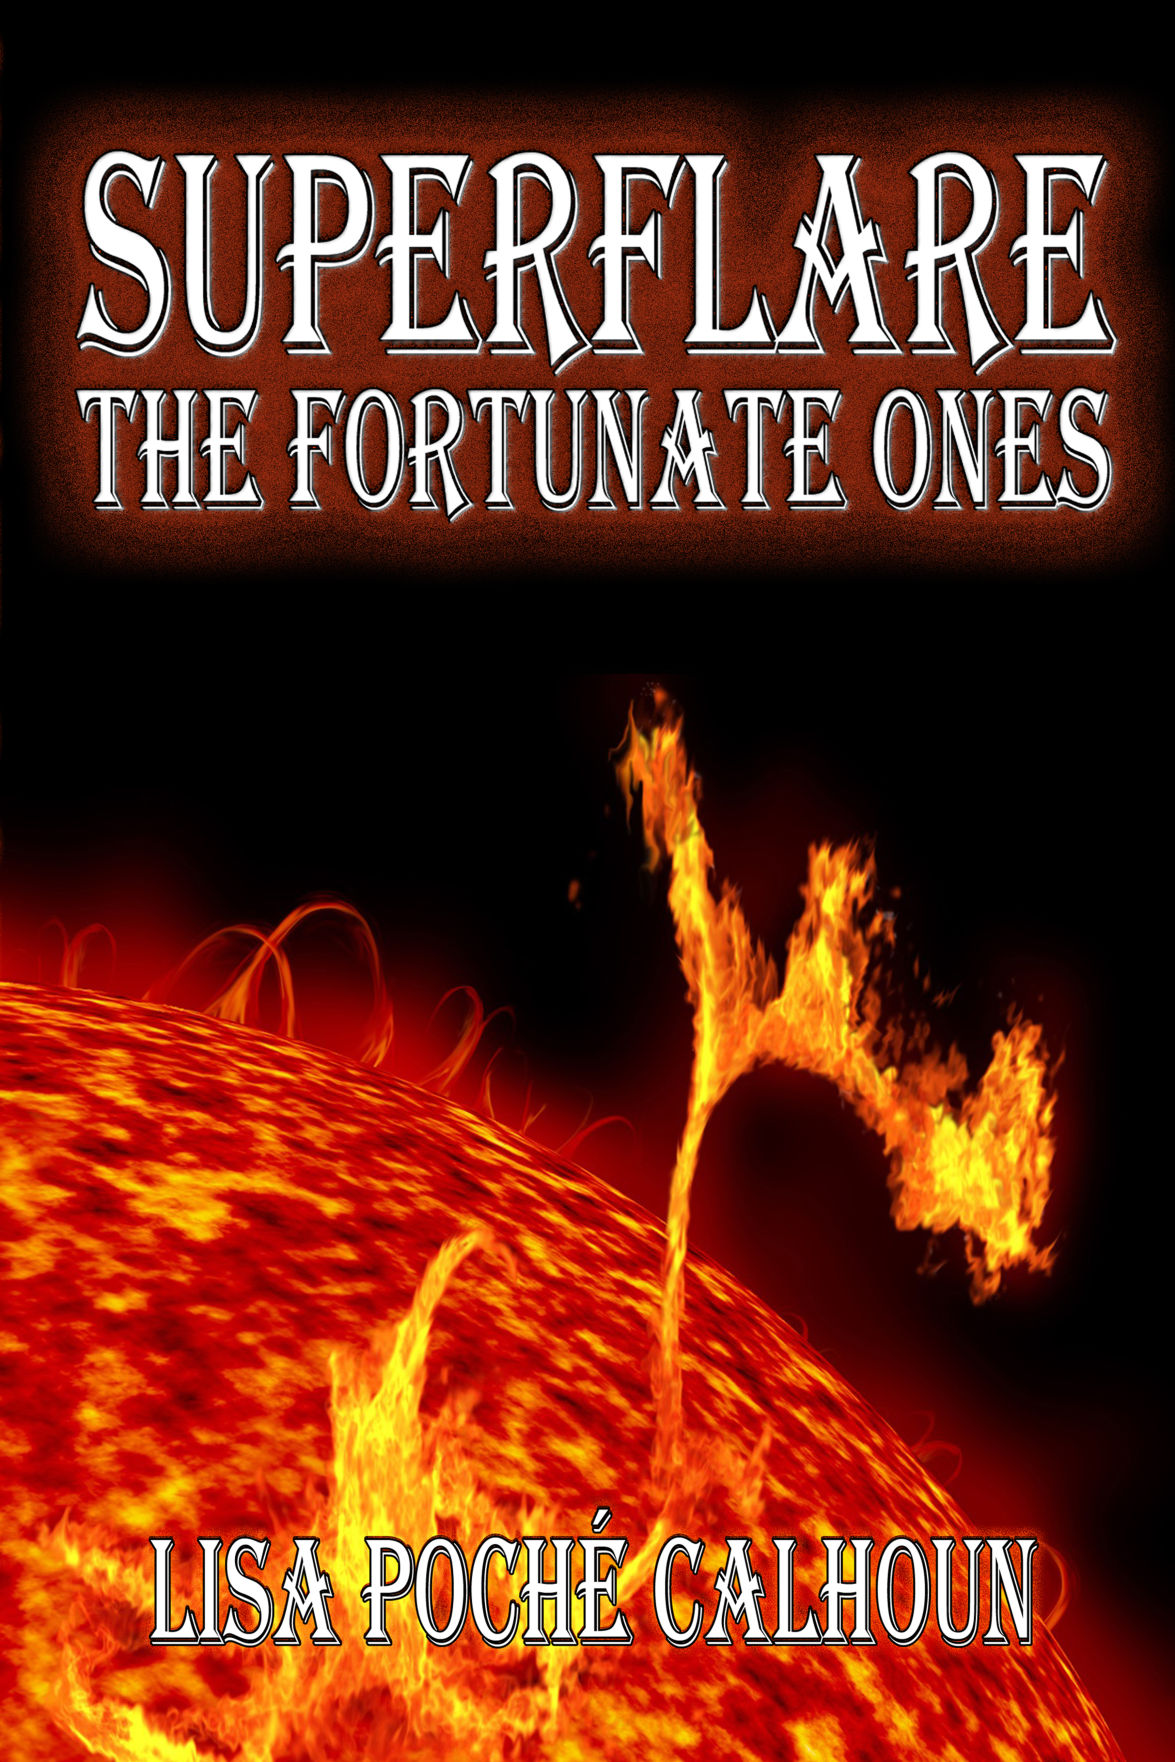 Superflare - The Fortunate Ones - Front Cover.jpg